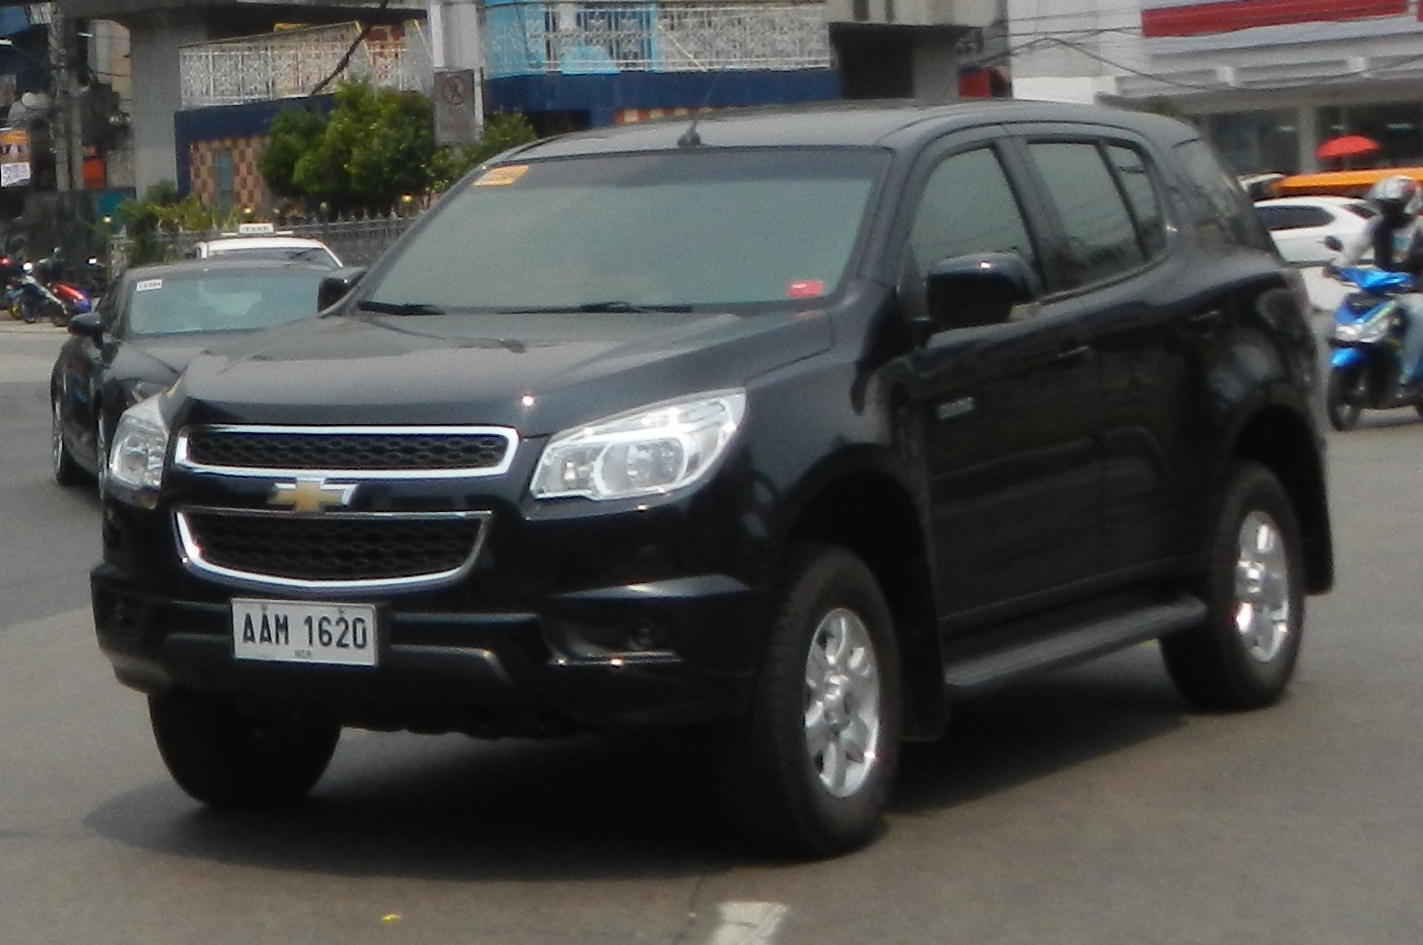 File:Chevrolet TrailBlazer 01.jpg - Wikimedia Commons